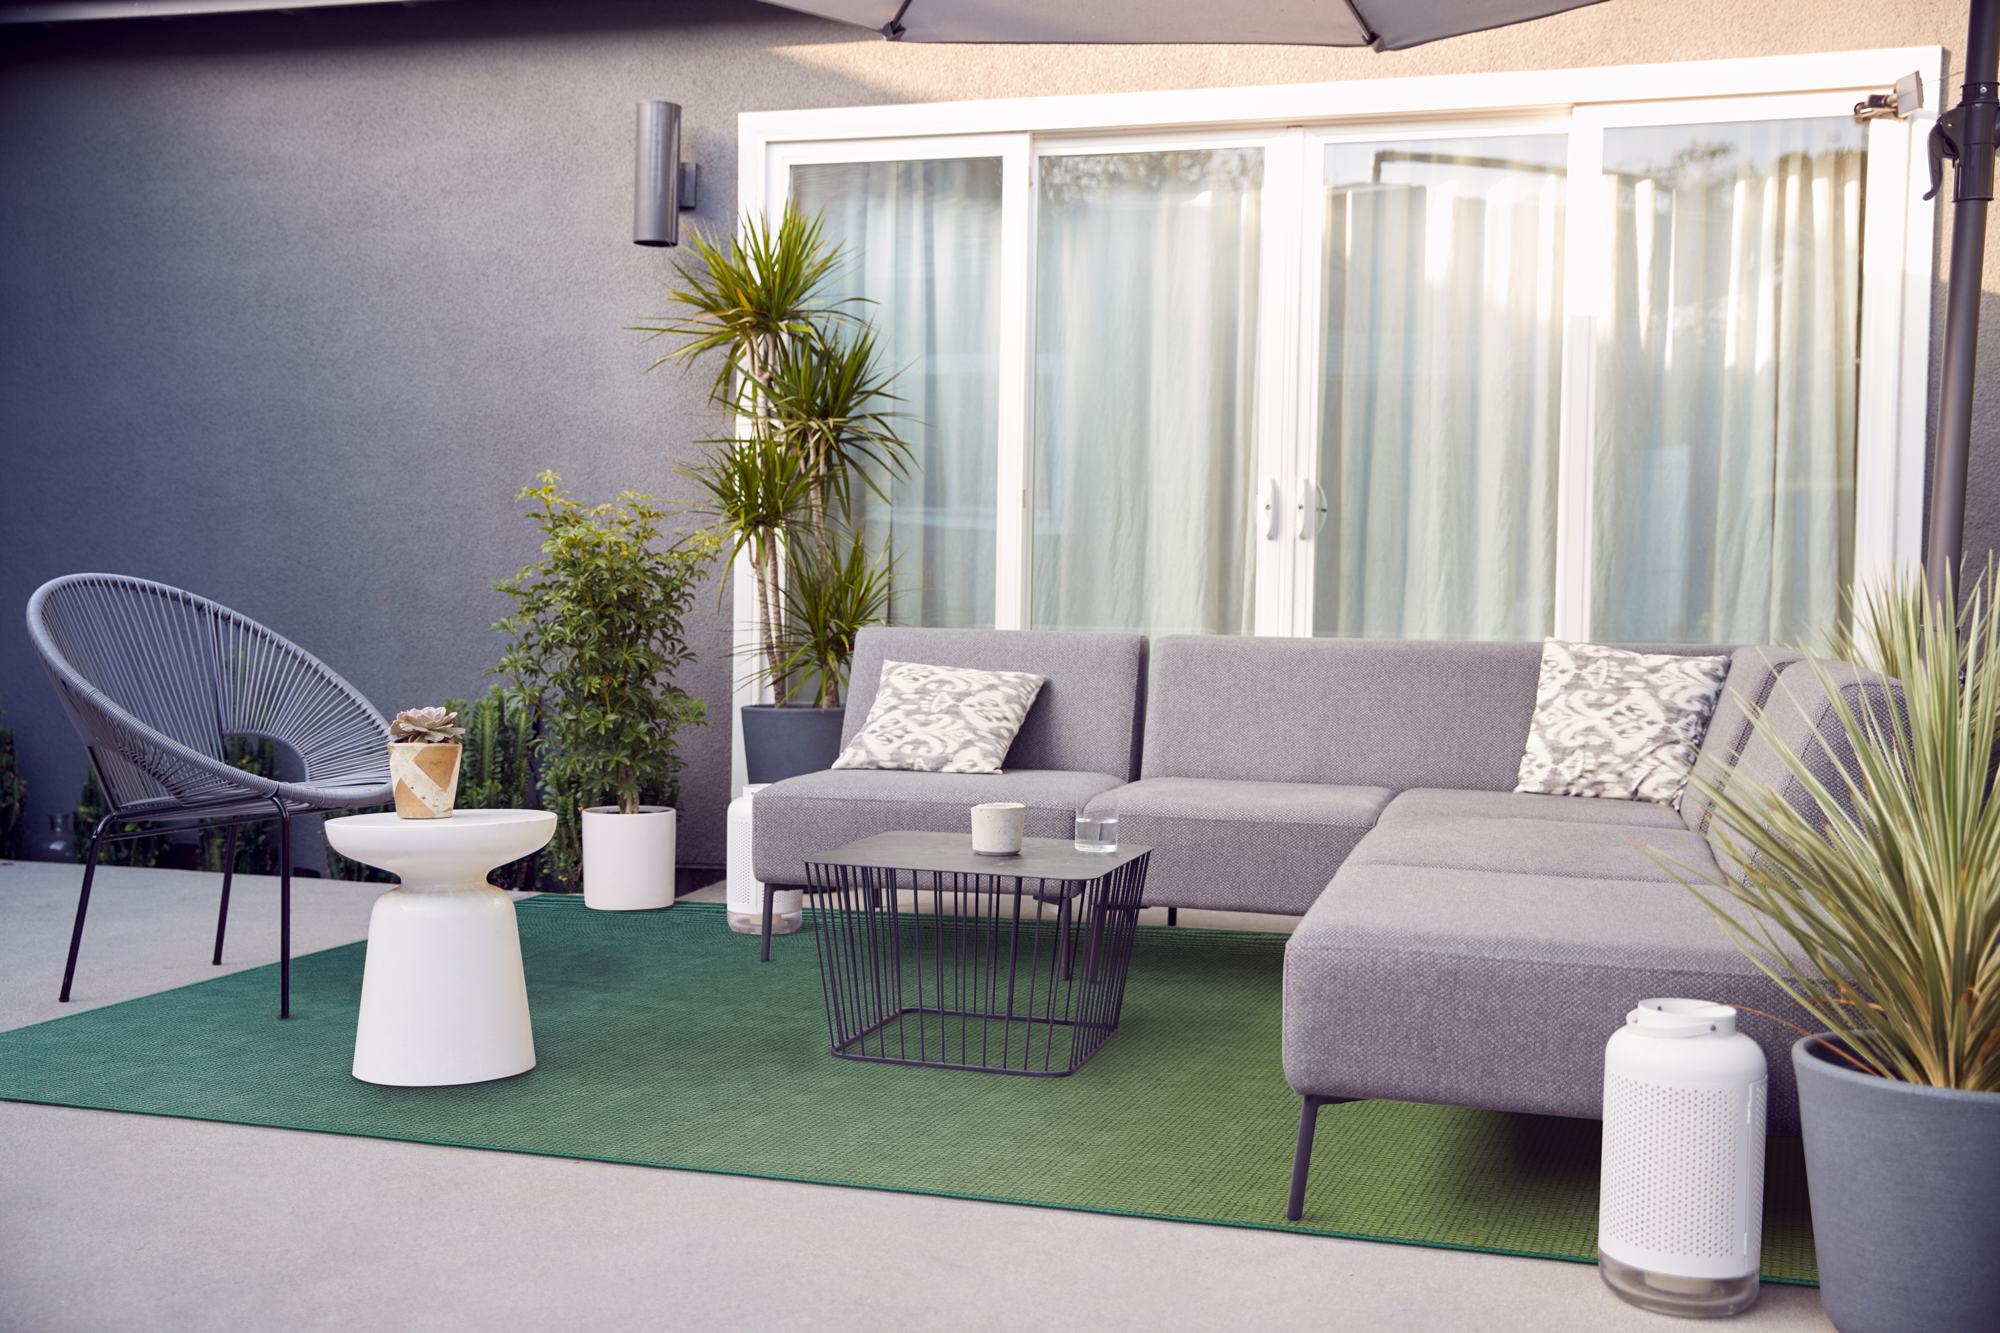 Modern outdoor patio, neutral tones with a vibrant green image impressions rug.